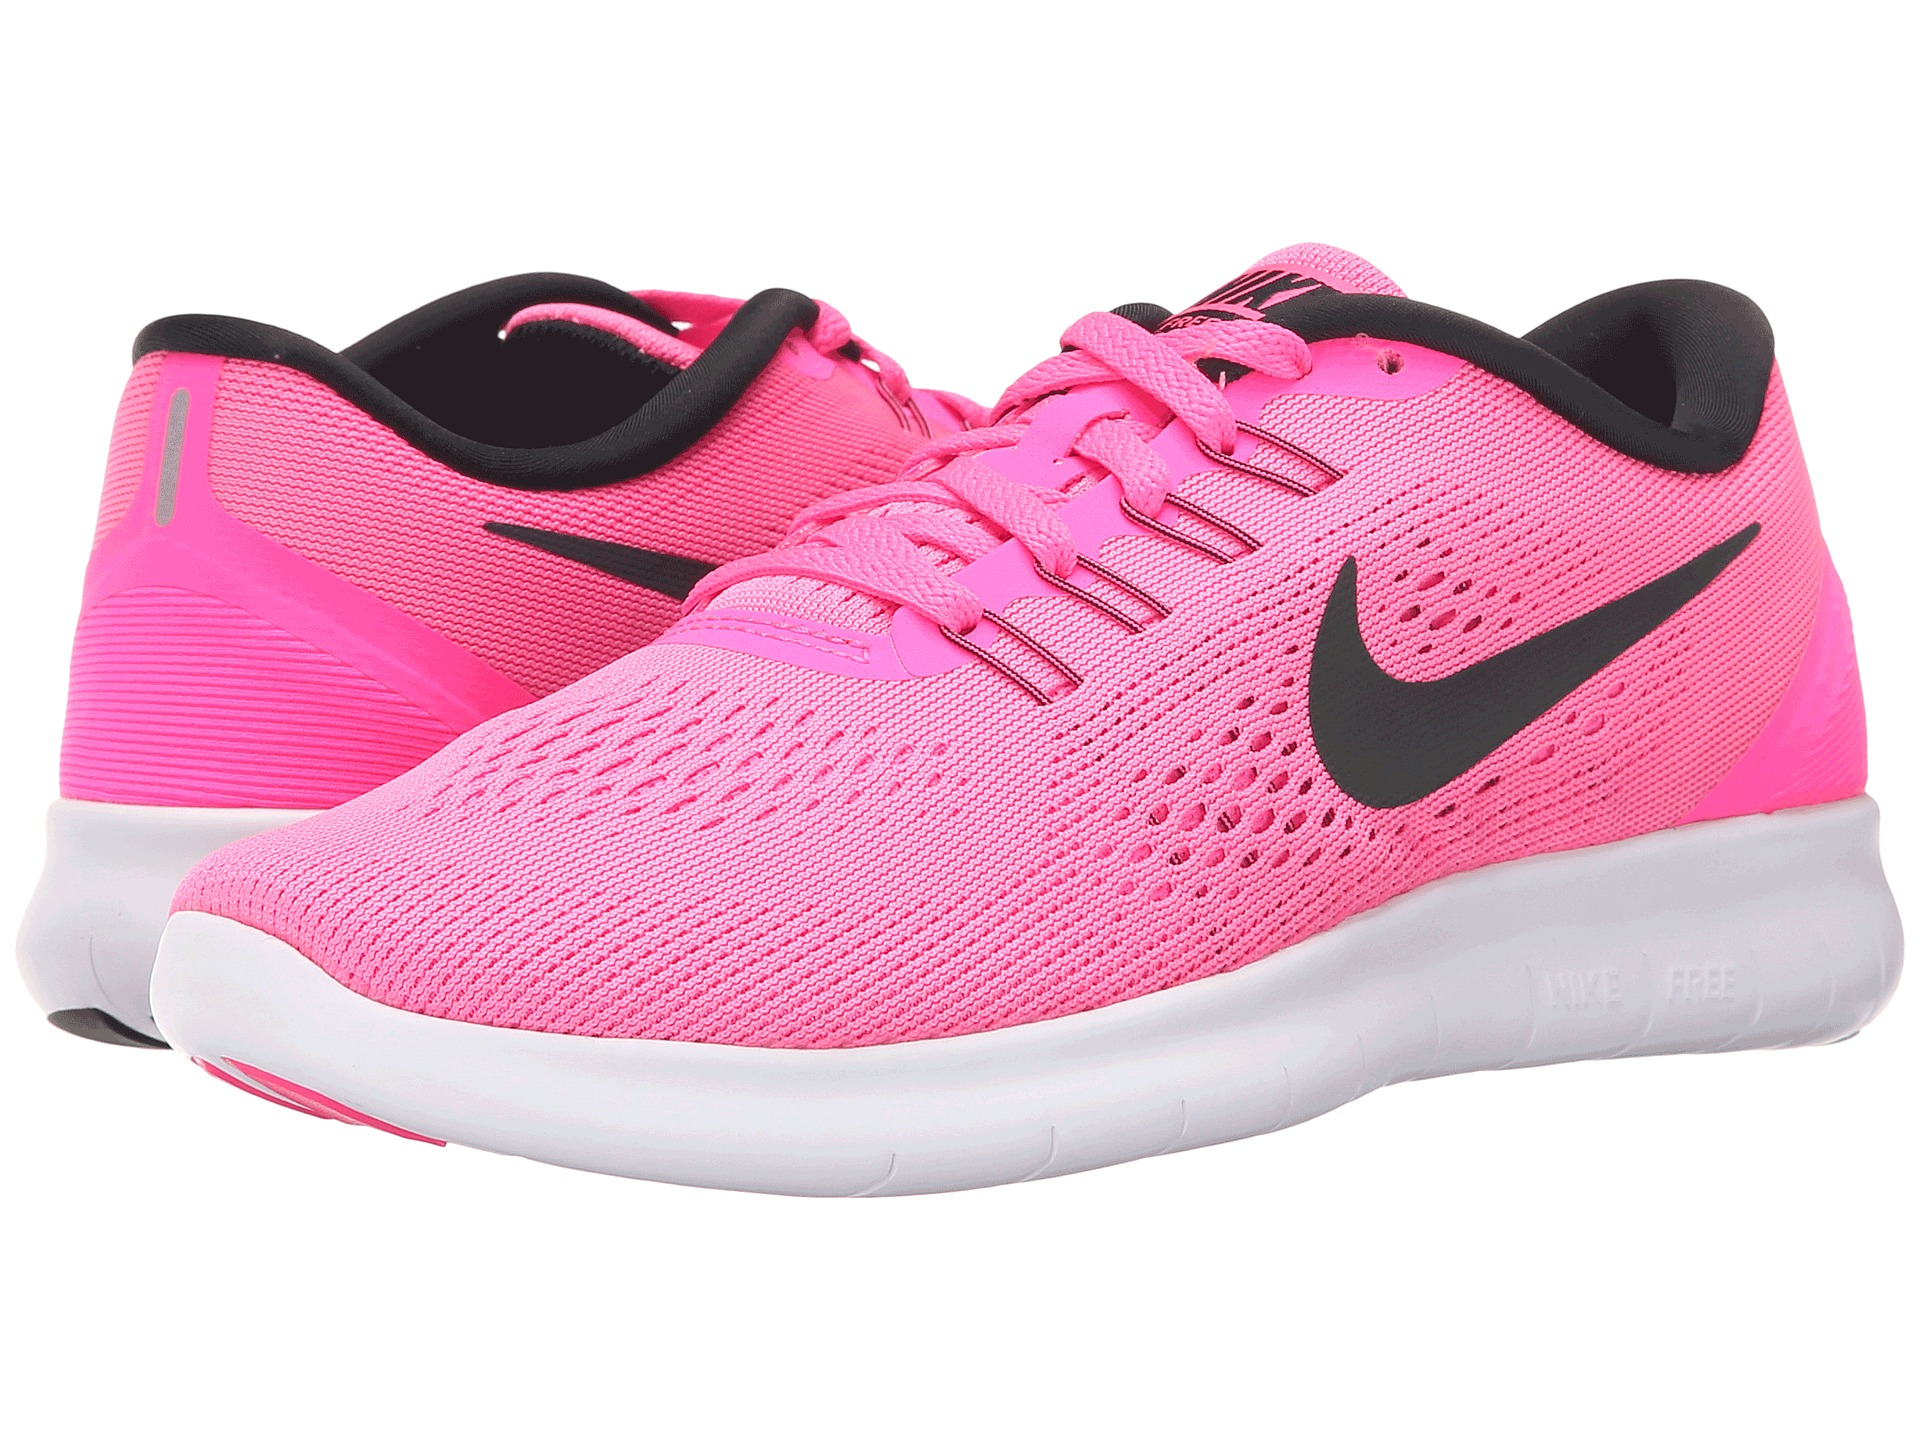 a041d8a3fc49 Lyst - Nike Free Rn in Pink